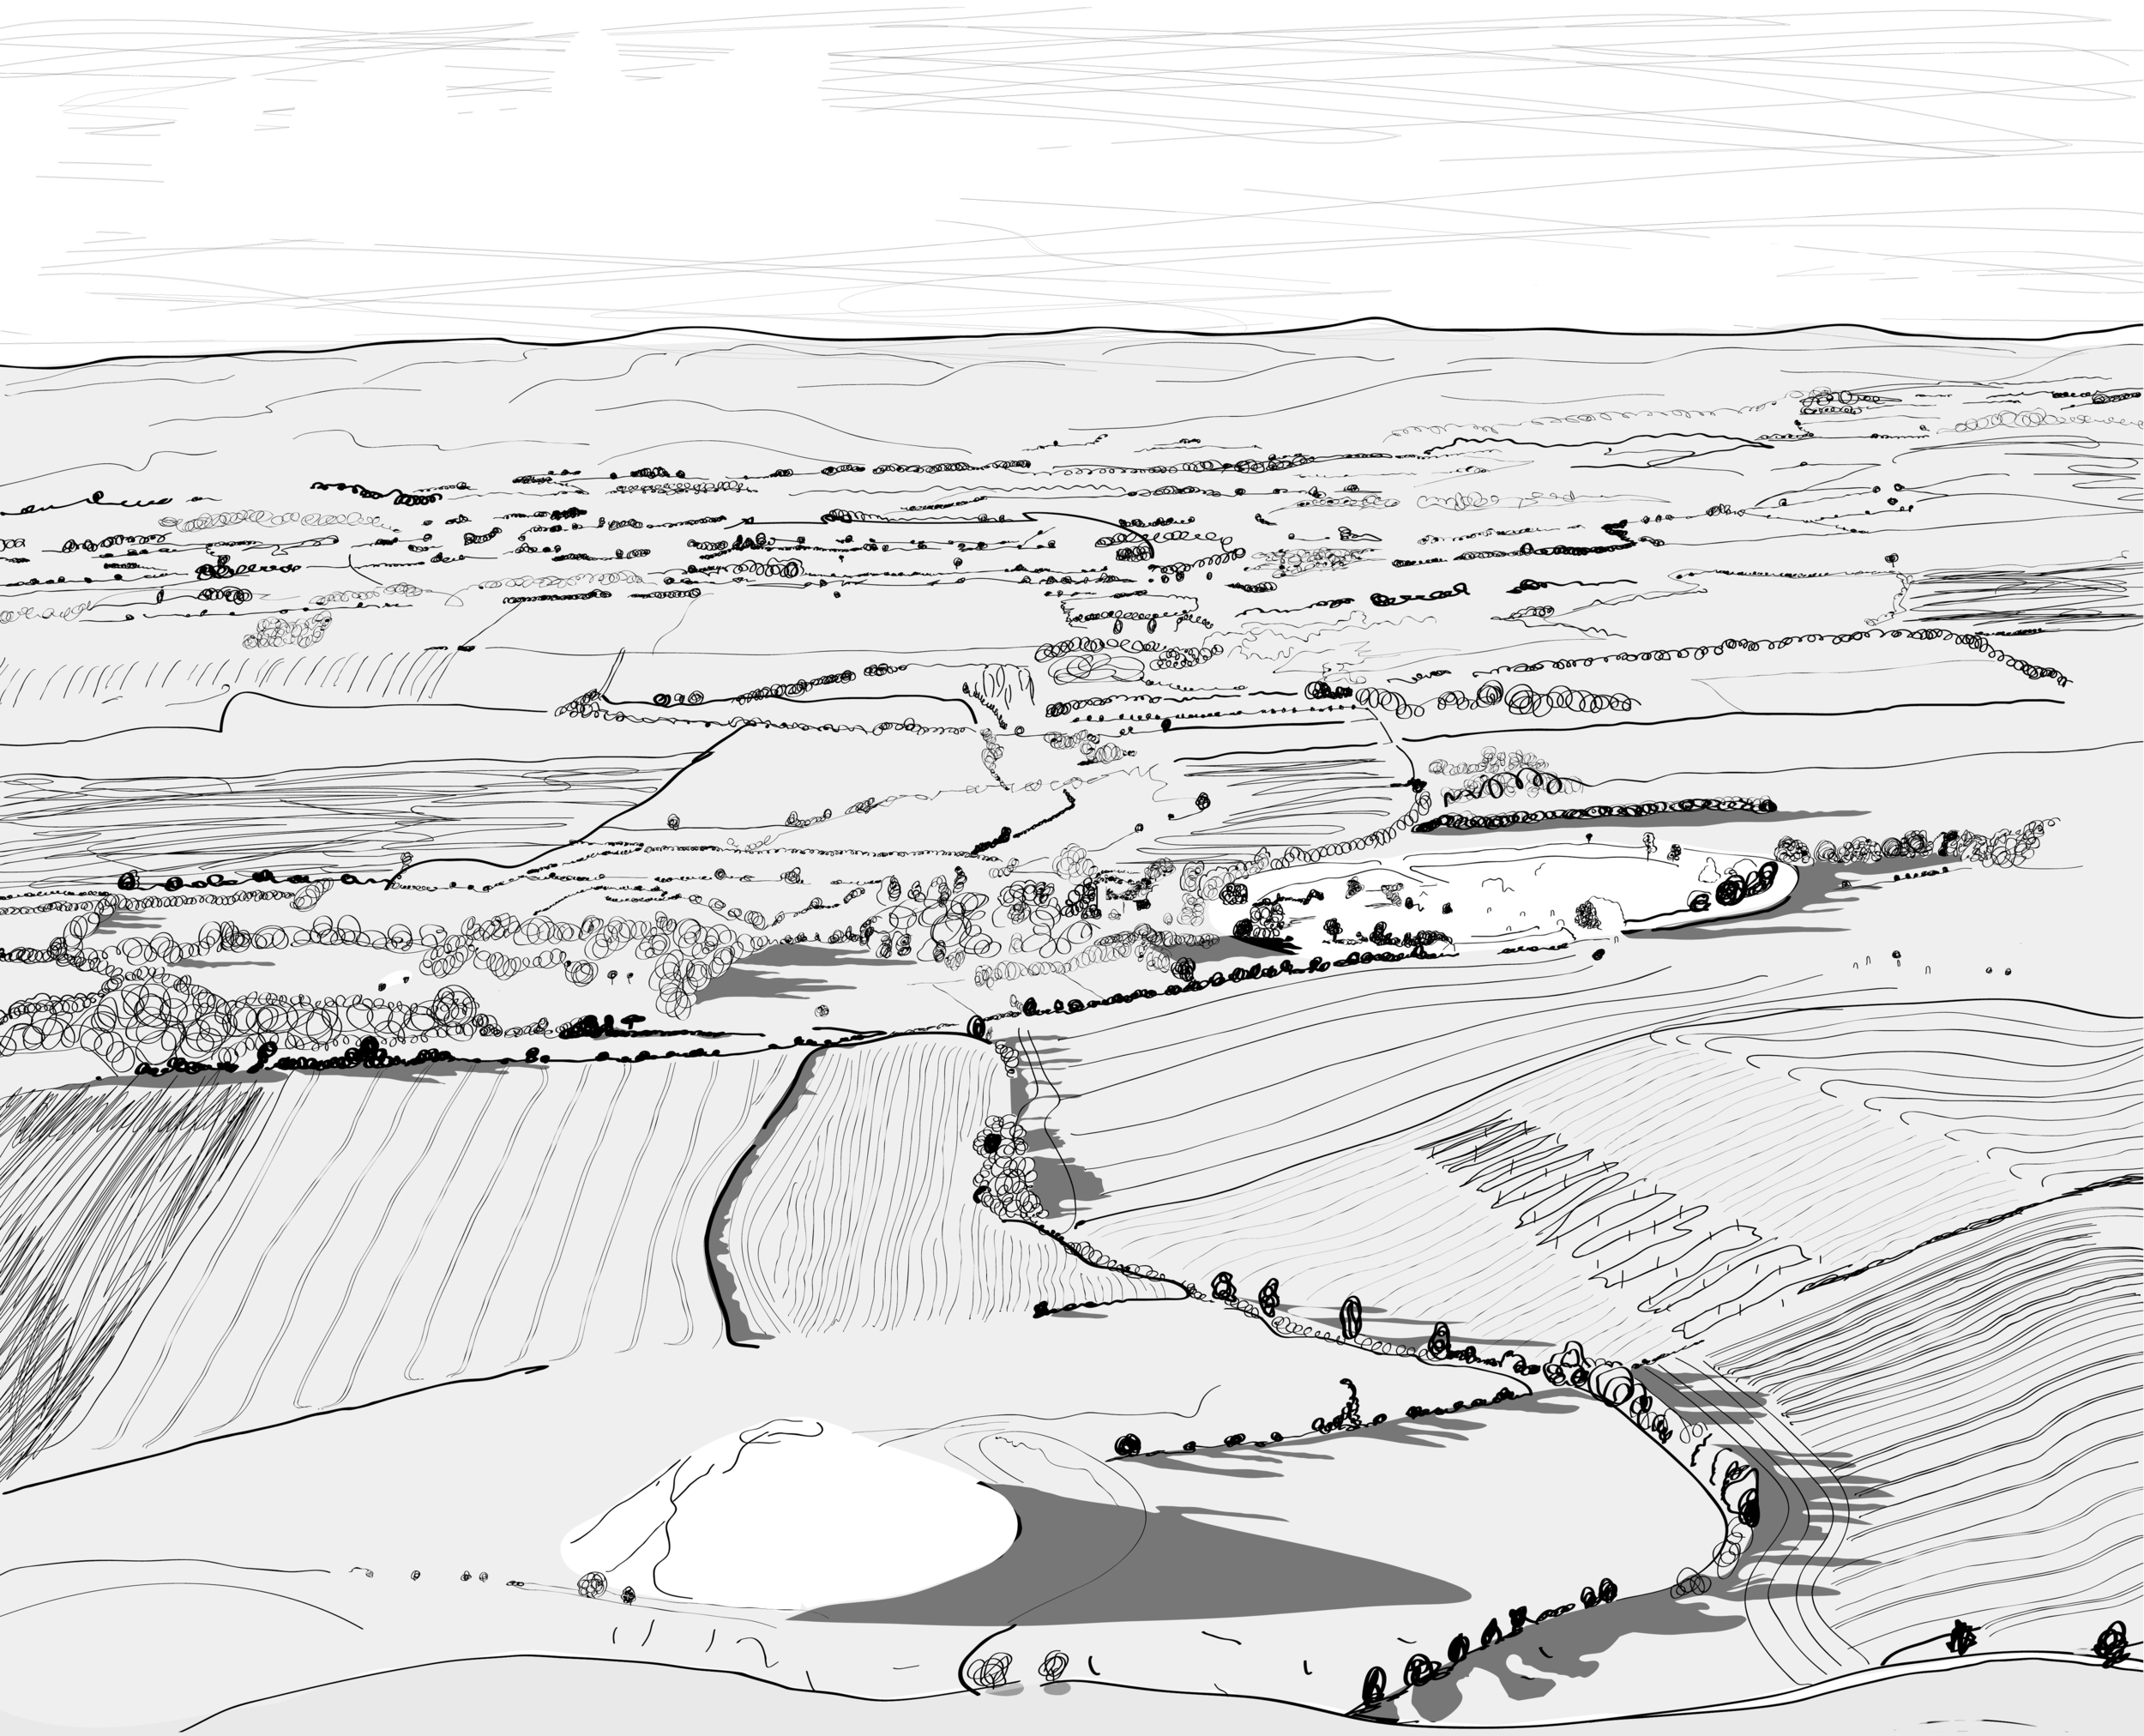 Looking across Silbury Hill towards Avebury (showing the water meadow and the muddy path) by Ray Ward